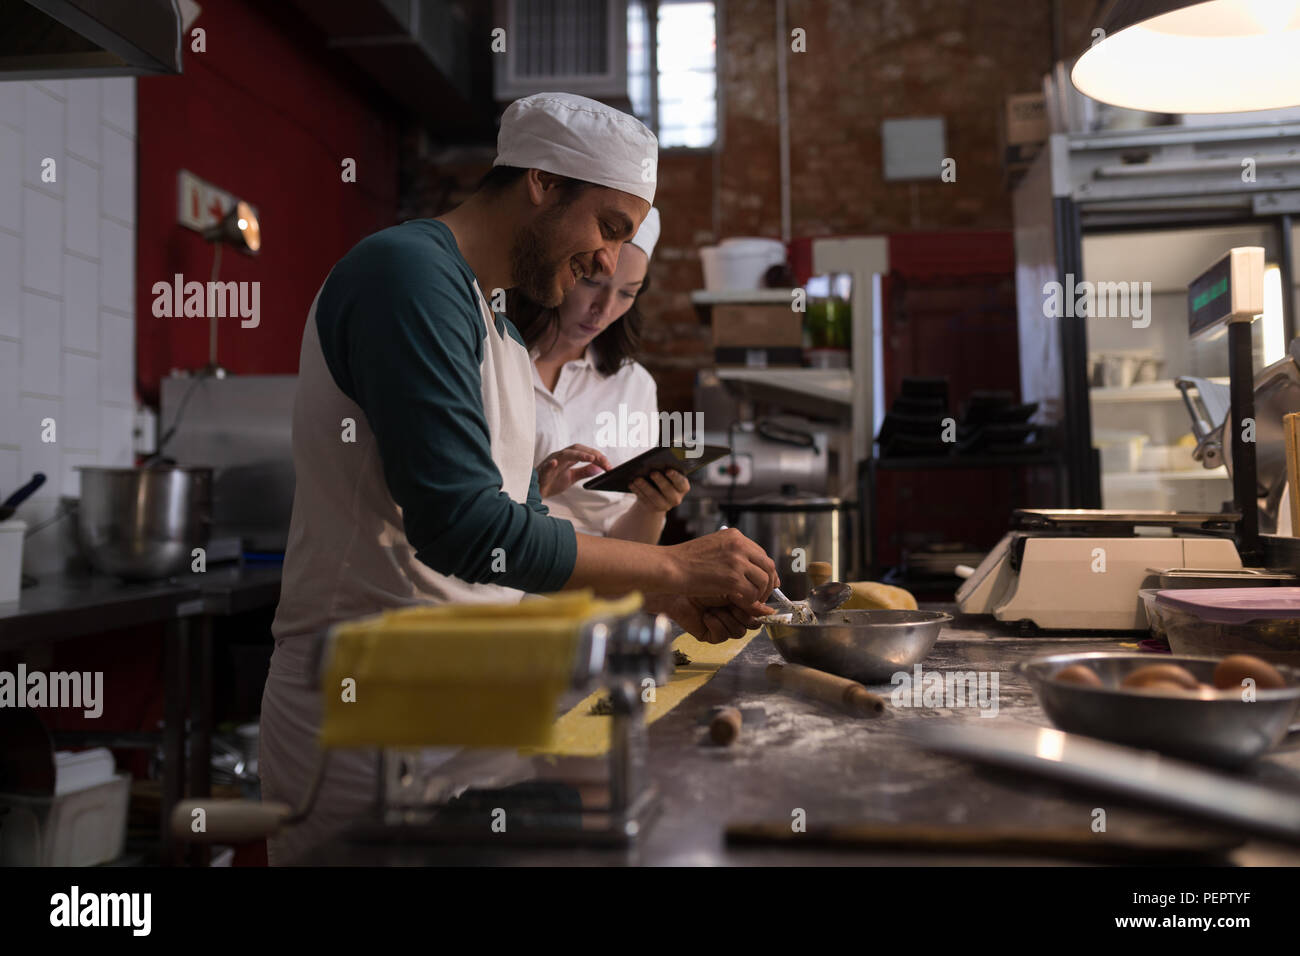 Baker preparing pasta while co-worker using digital tablet his beside - Stock Image